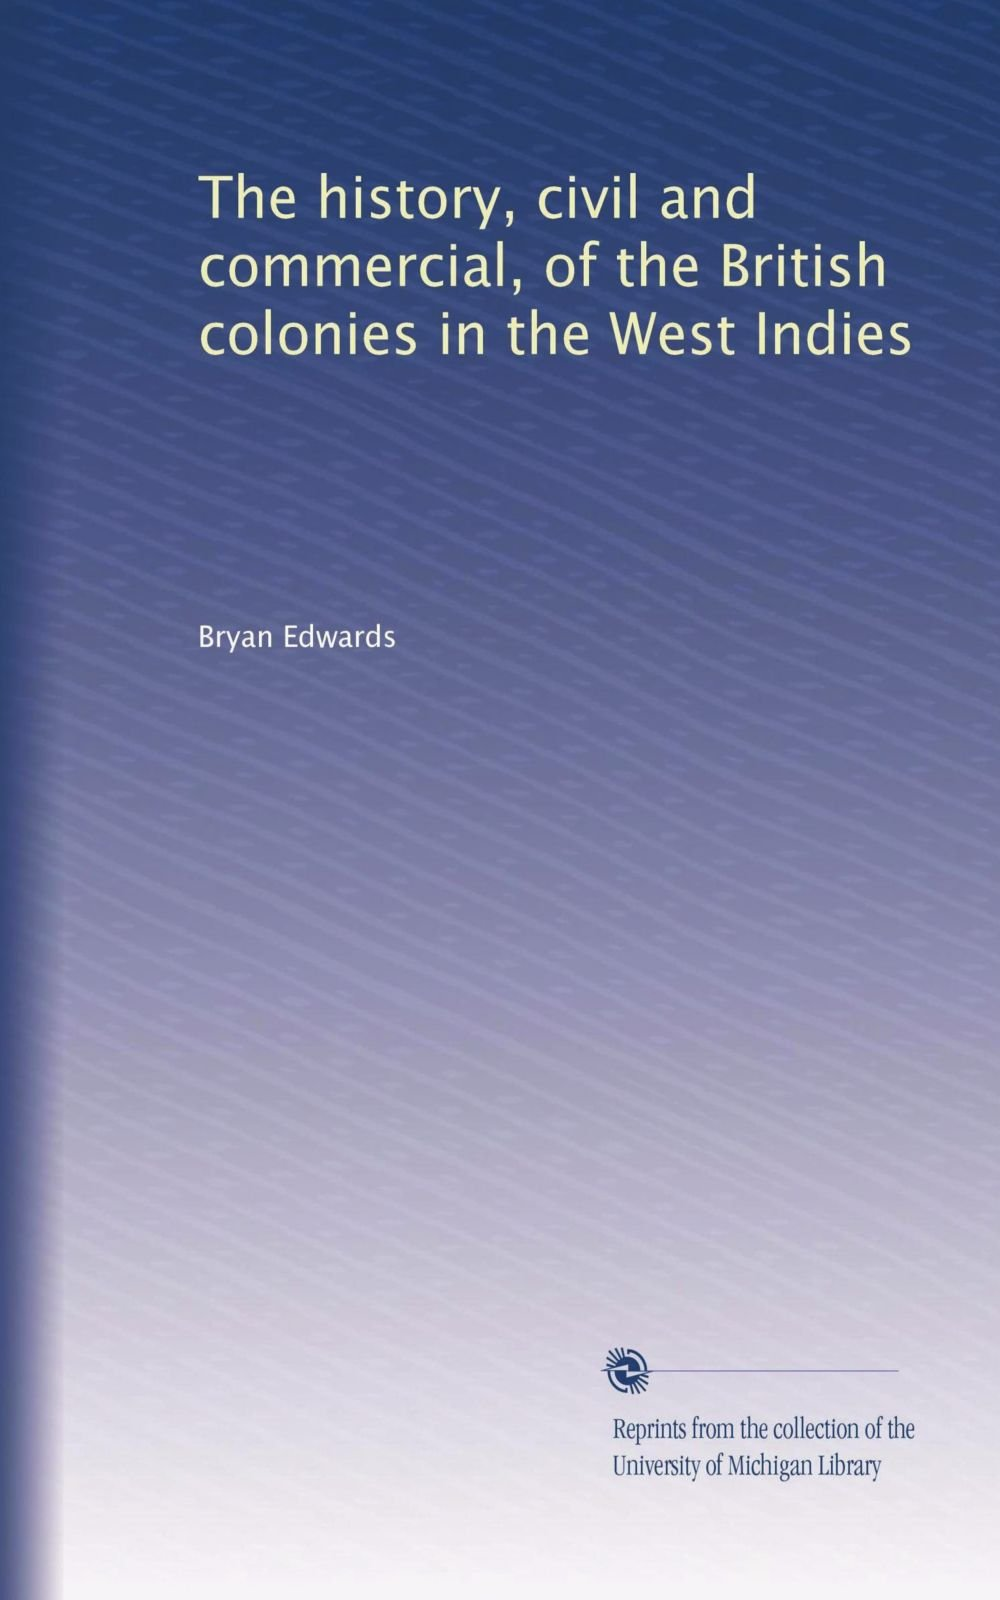 Download The history, civil and commercial, of the British colonies in the West Indies (Volume 3) ebook